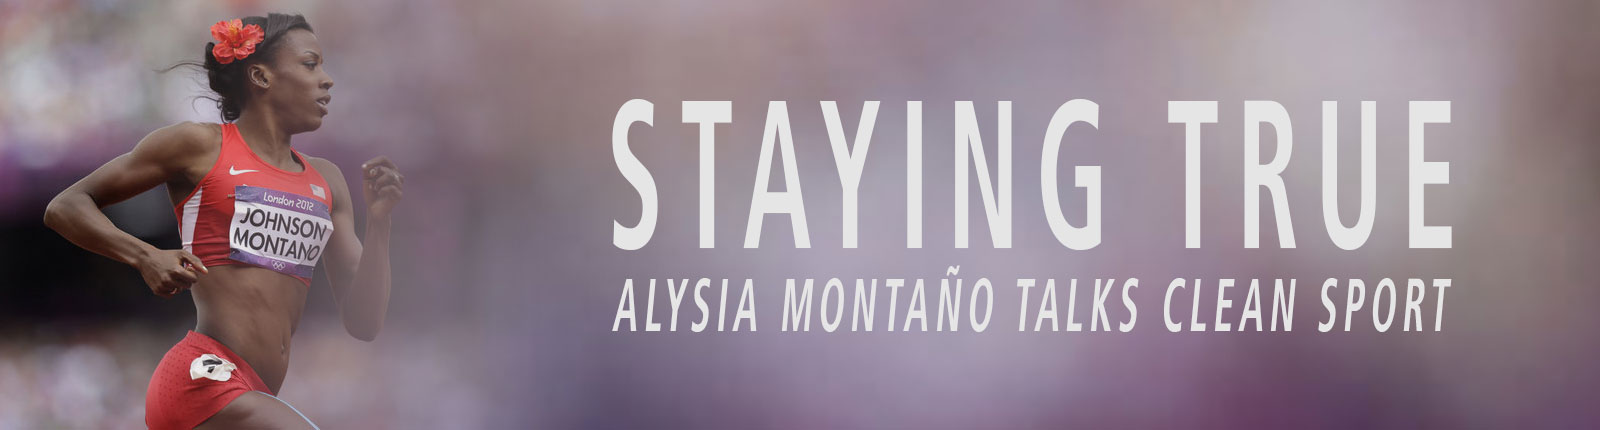 staying-true-alysia-montano-talks-clean-sport